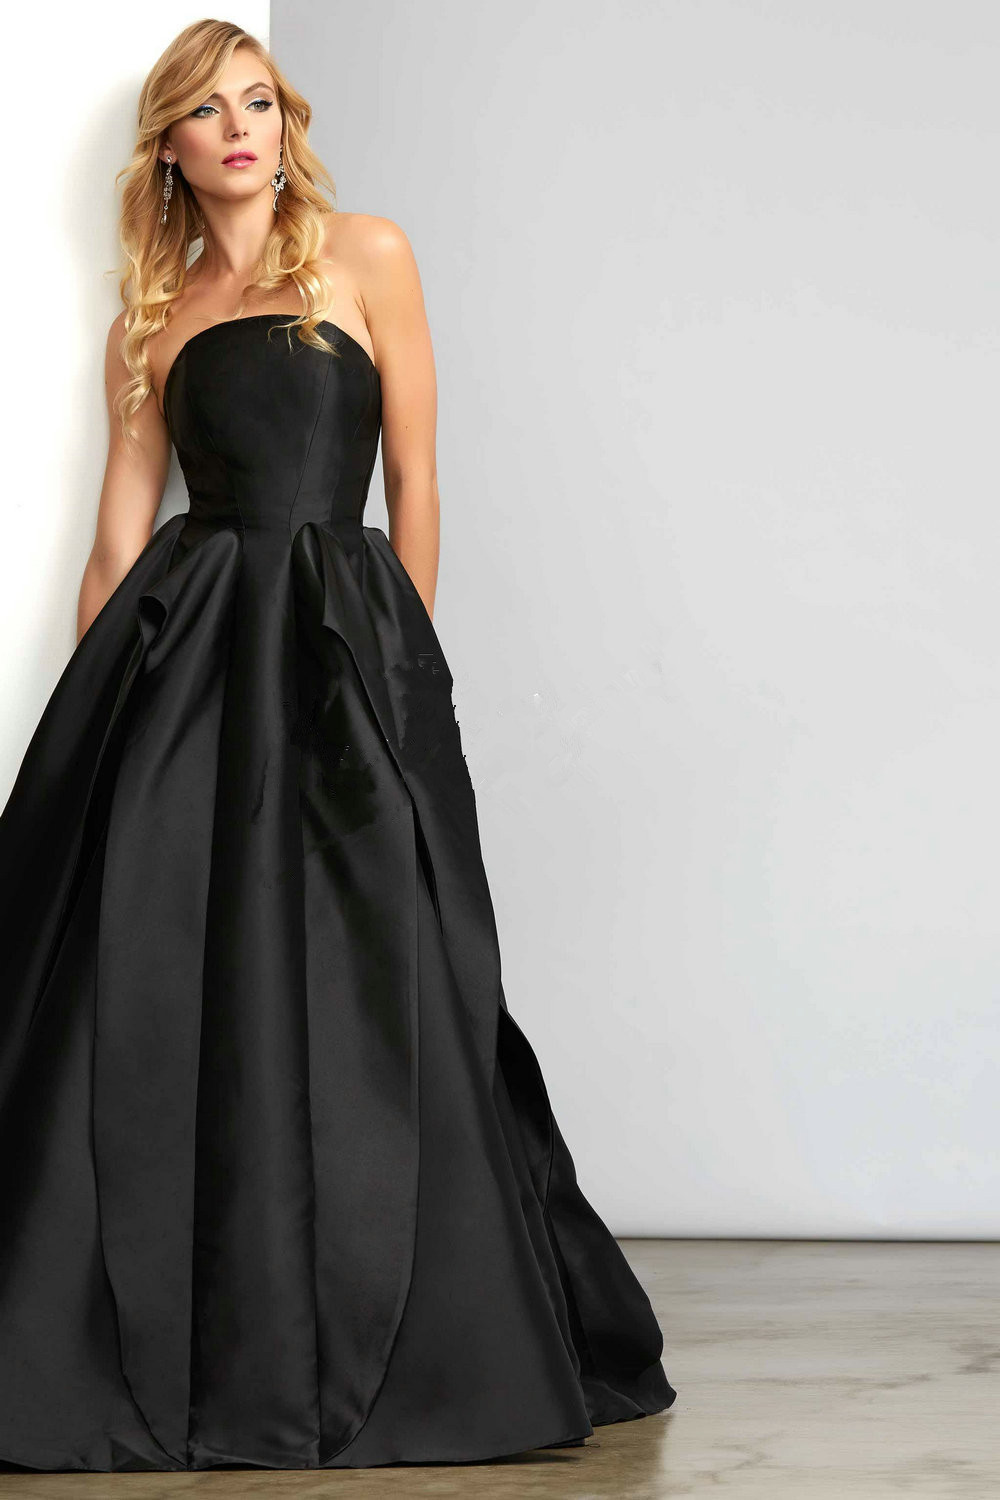 Aliexpress.com : Buy Long Black Ball Gown Evening Dresses Elegant ...